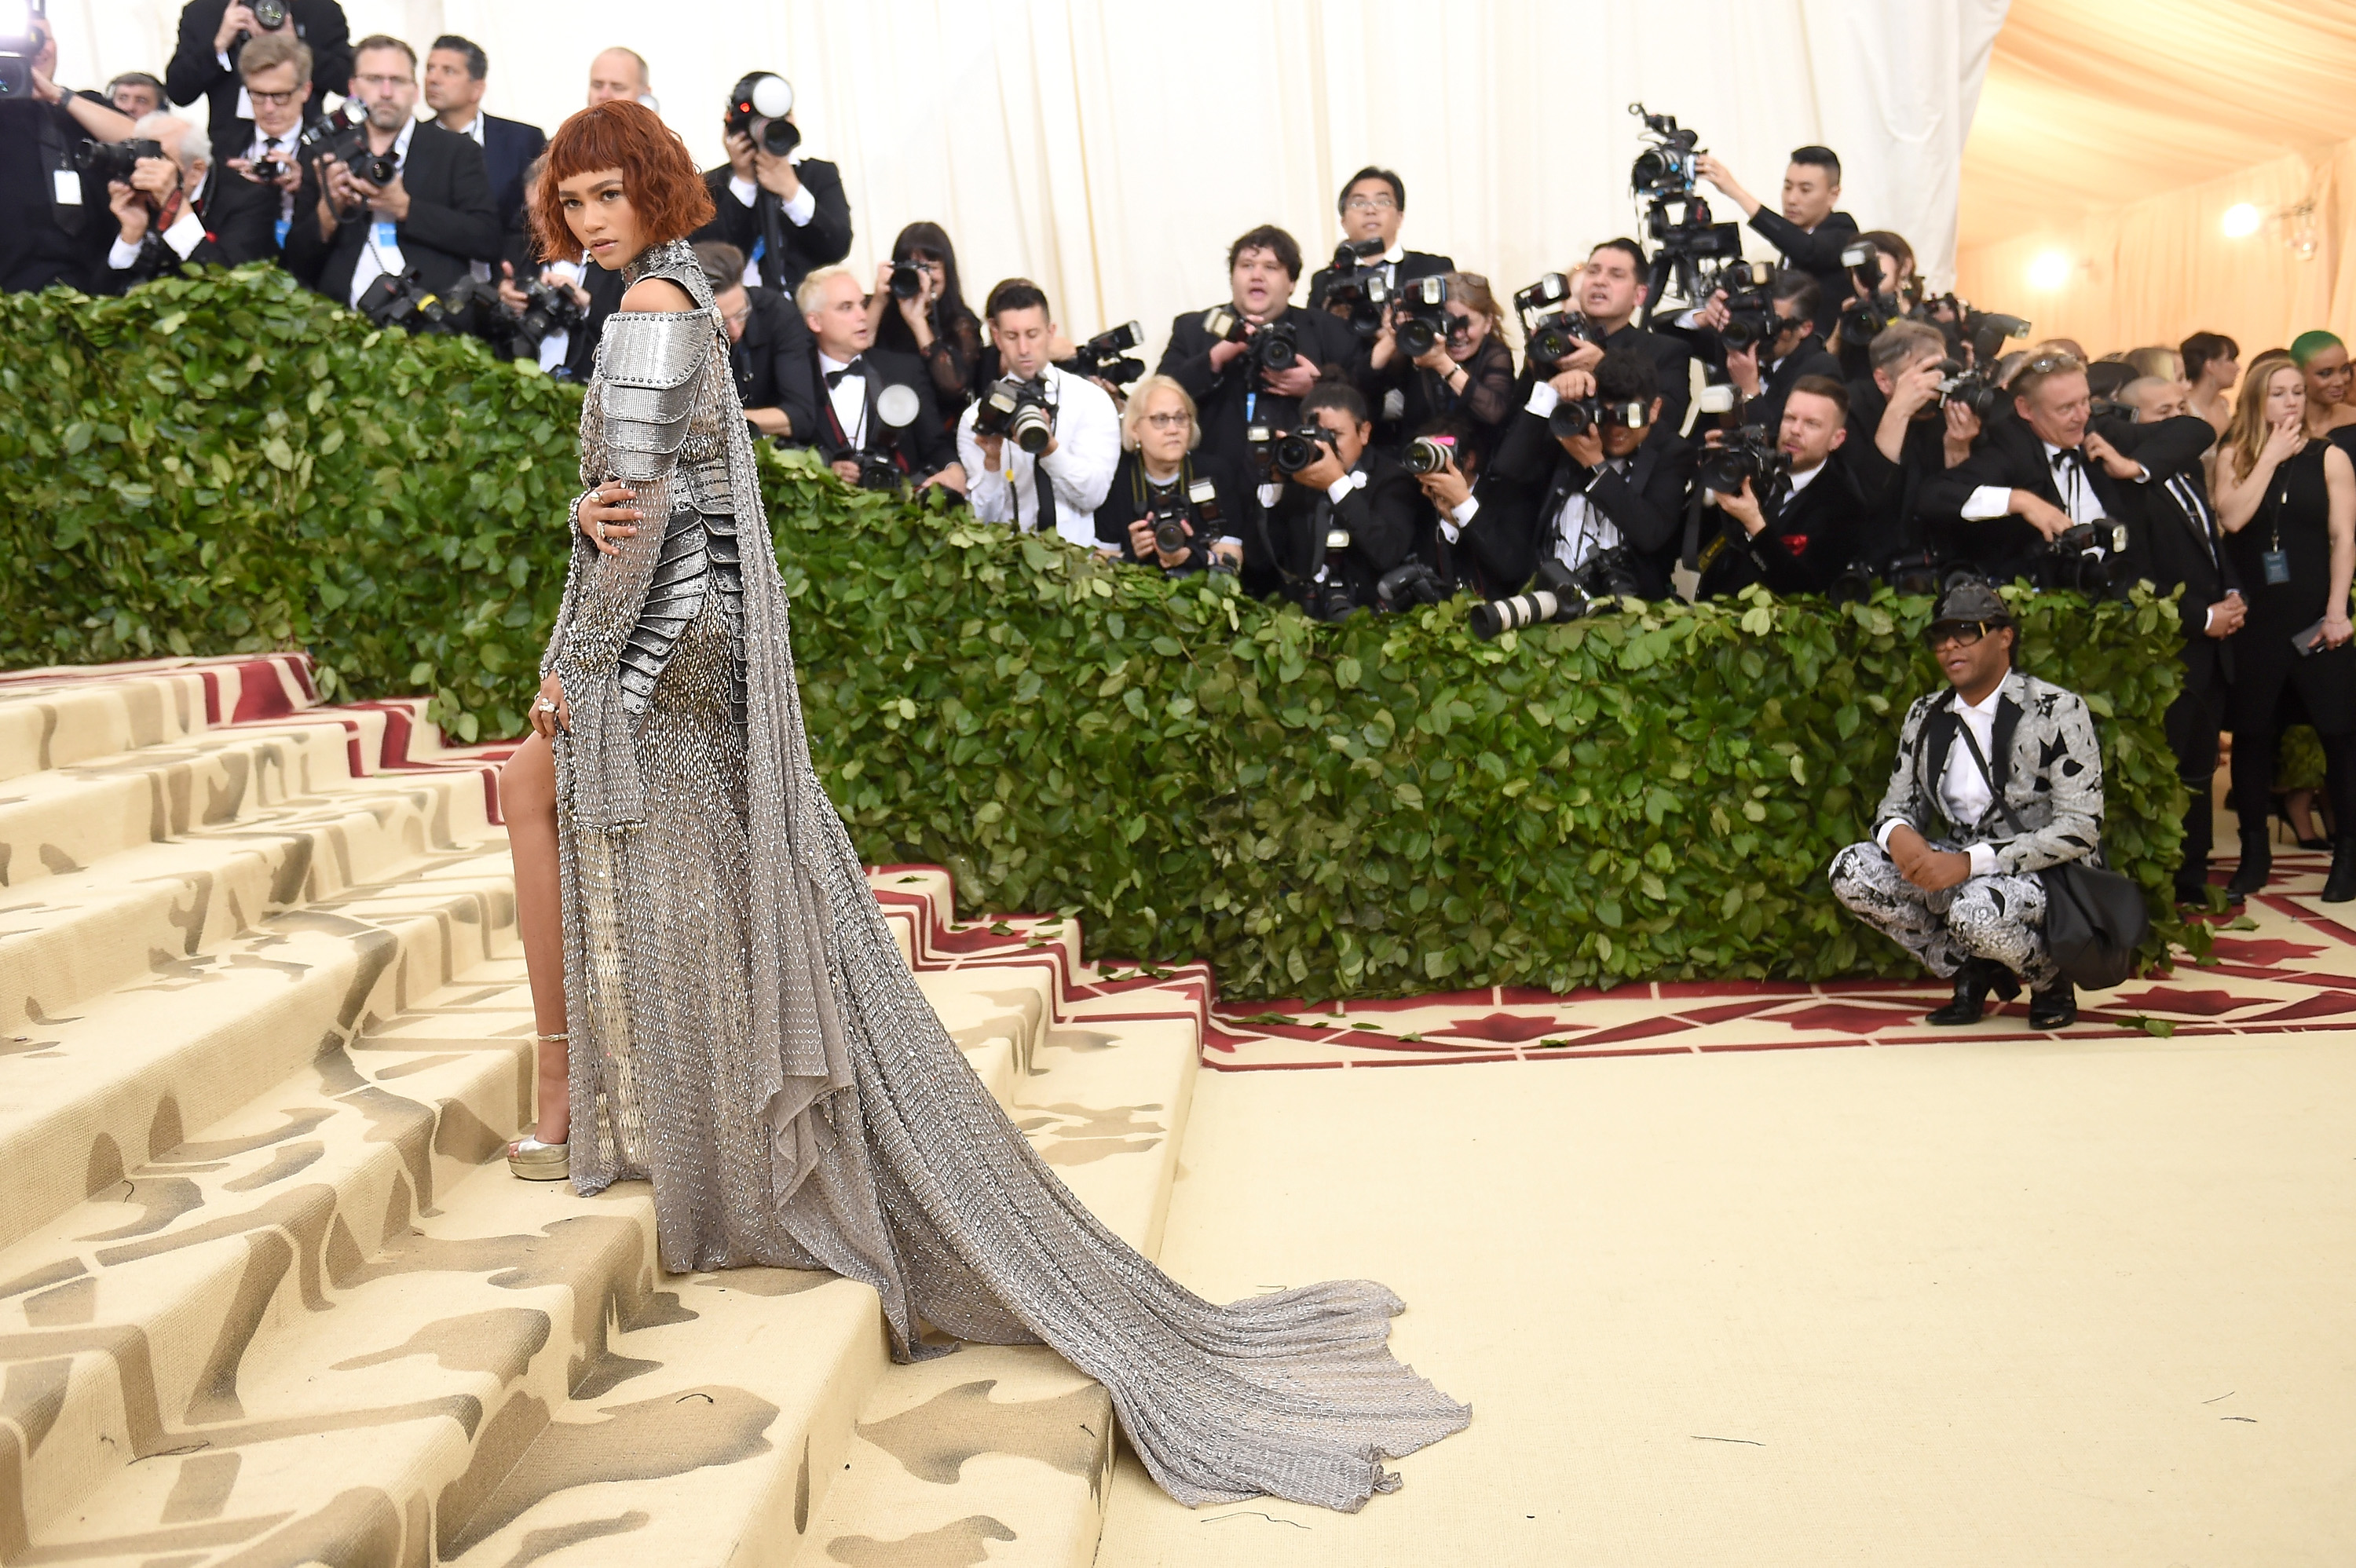 Zendaya attends the Heavenly Bodies: Fashion & The Catholic Imagination Costume Institute Gala at The Metropolitan Museum of Art on May 7, 2018 in New York City. (Photo by Jason Kempin/Getty Images)